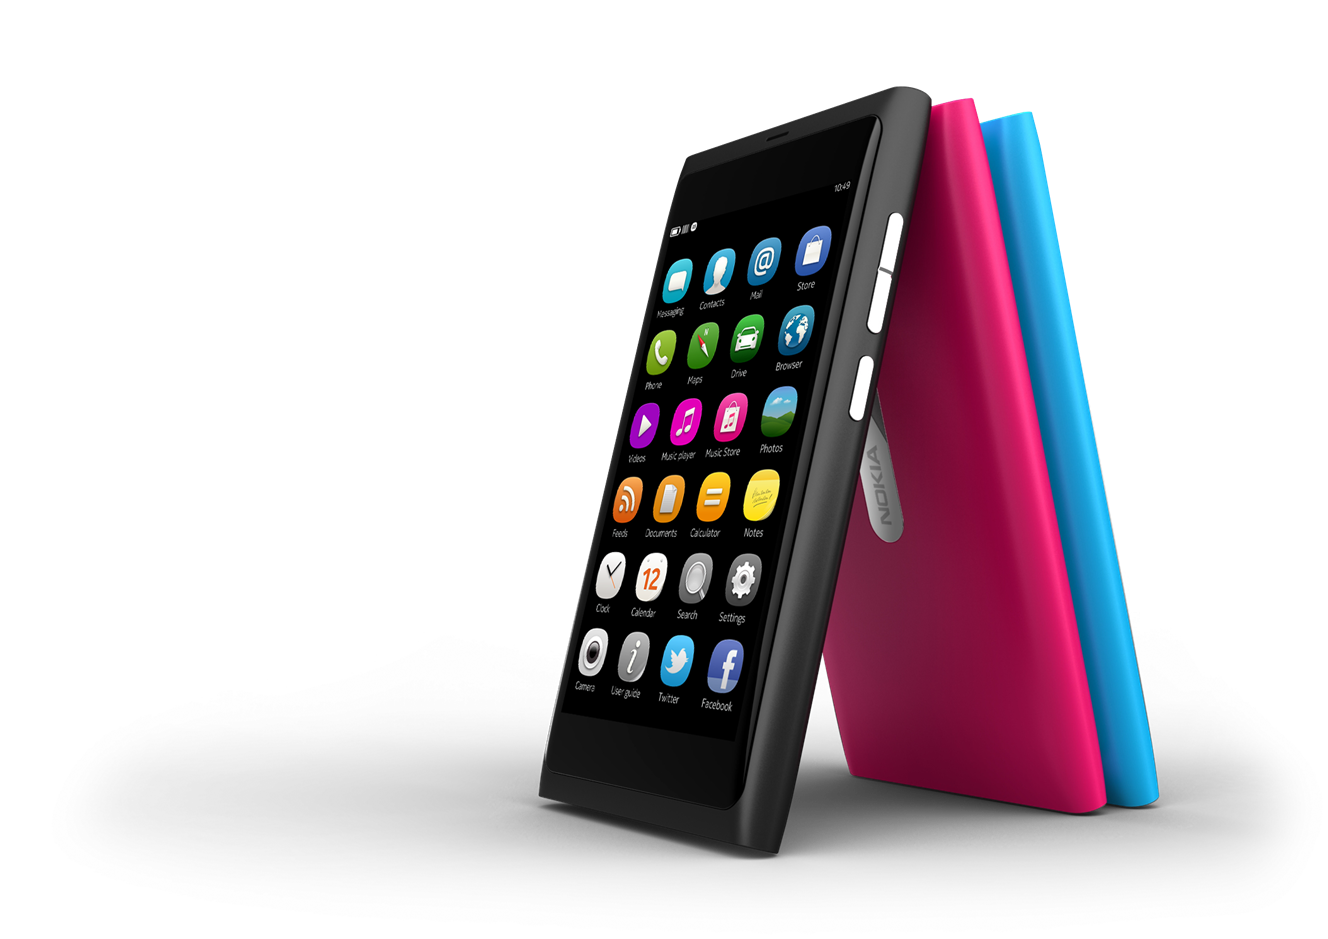 Nokia N9 Review, Mobile Swipe and Stylish | I - Celebes